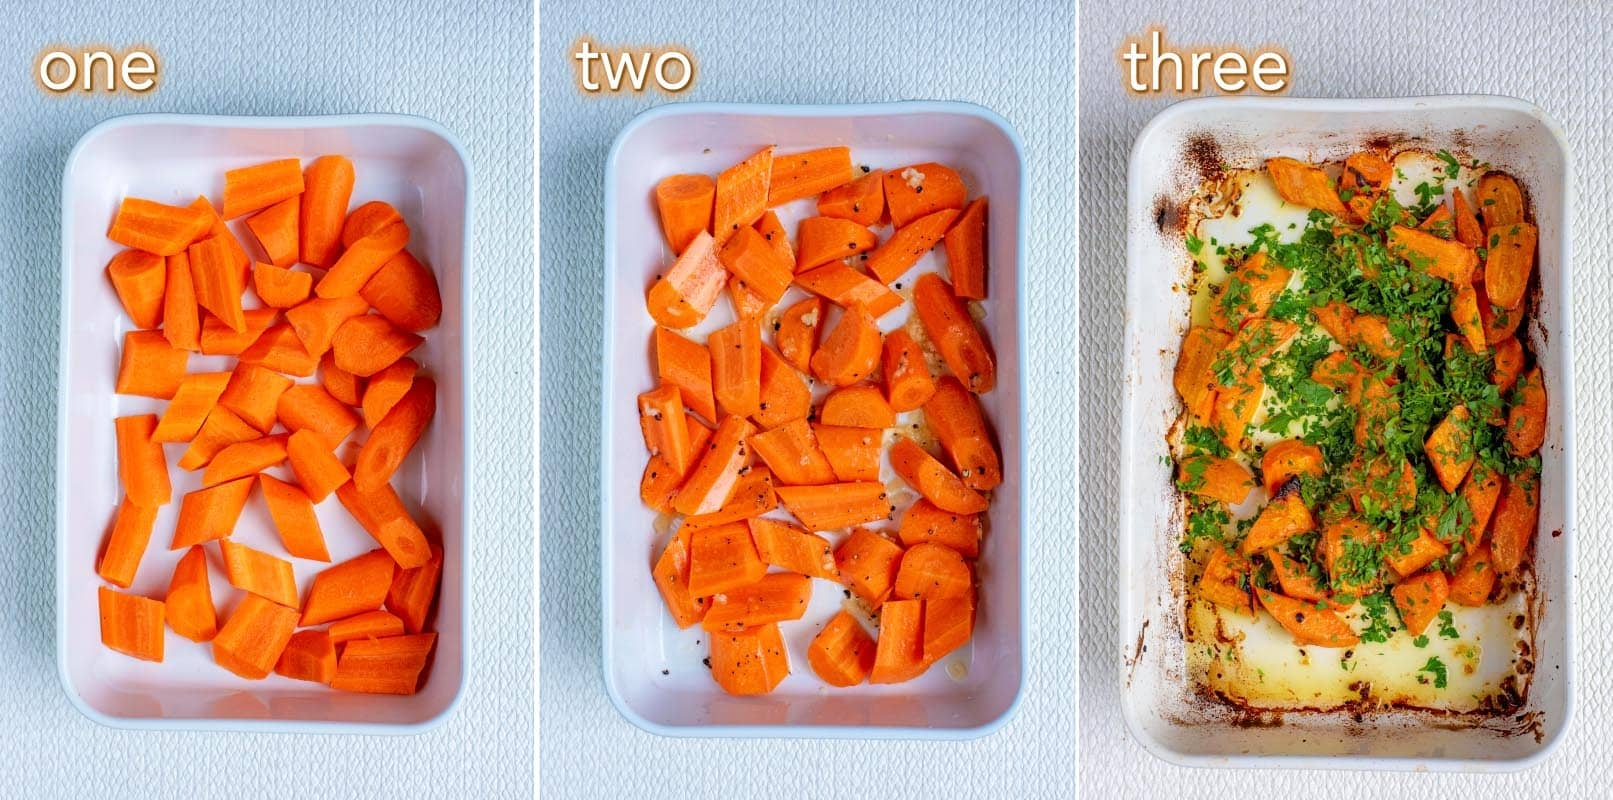 Three shot collage of roasted carrots in a baking dish.